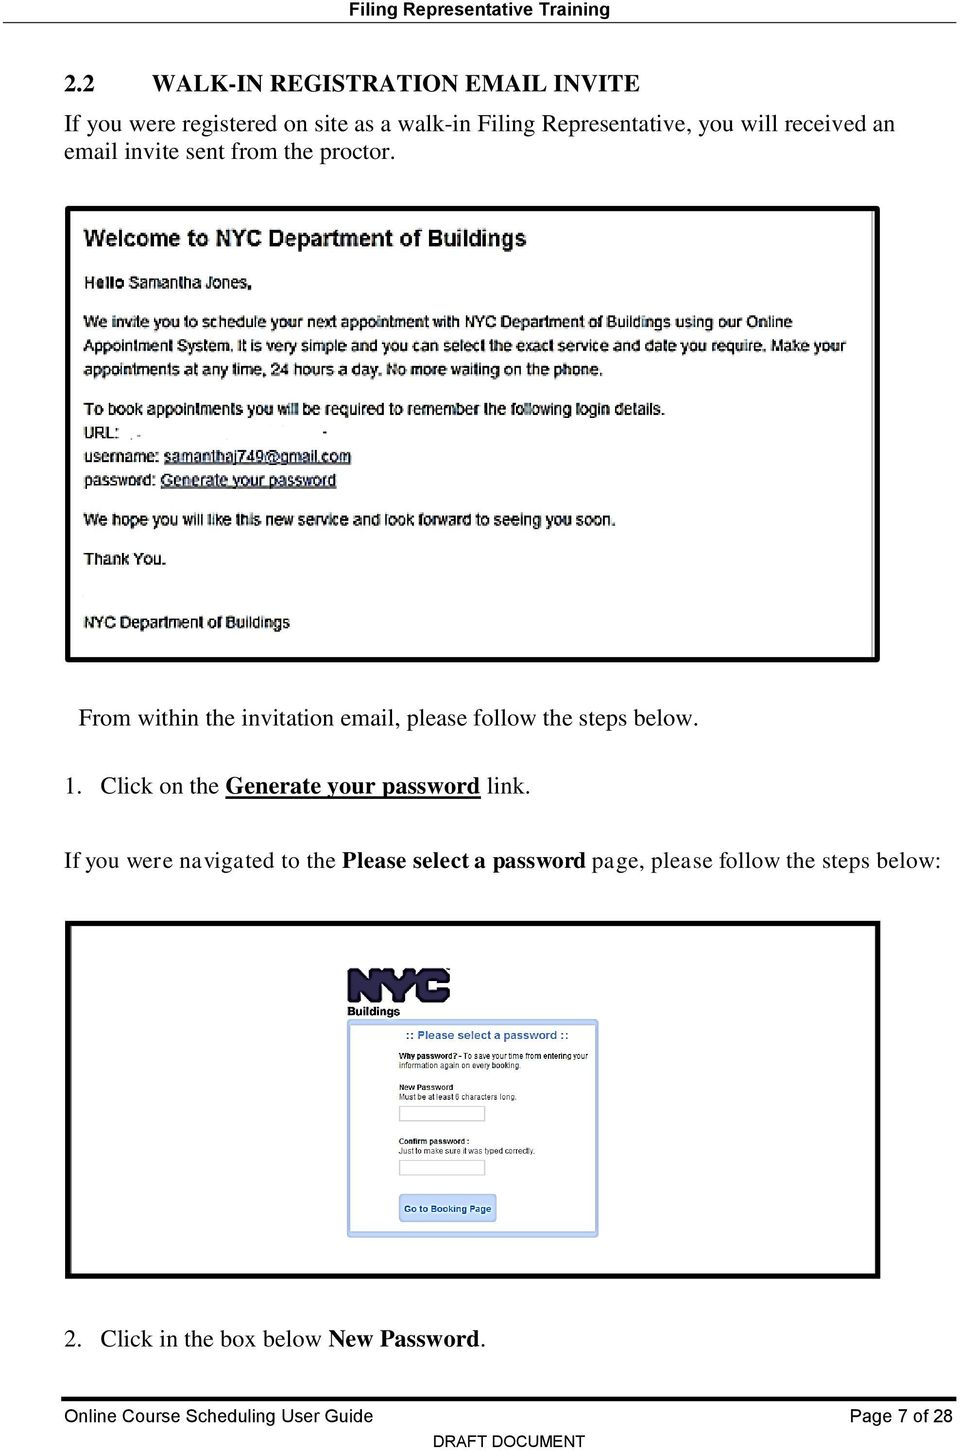 From within the invitation email, please follow the steps below. 1. Click on the Generate your password link.